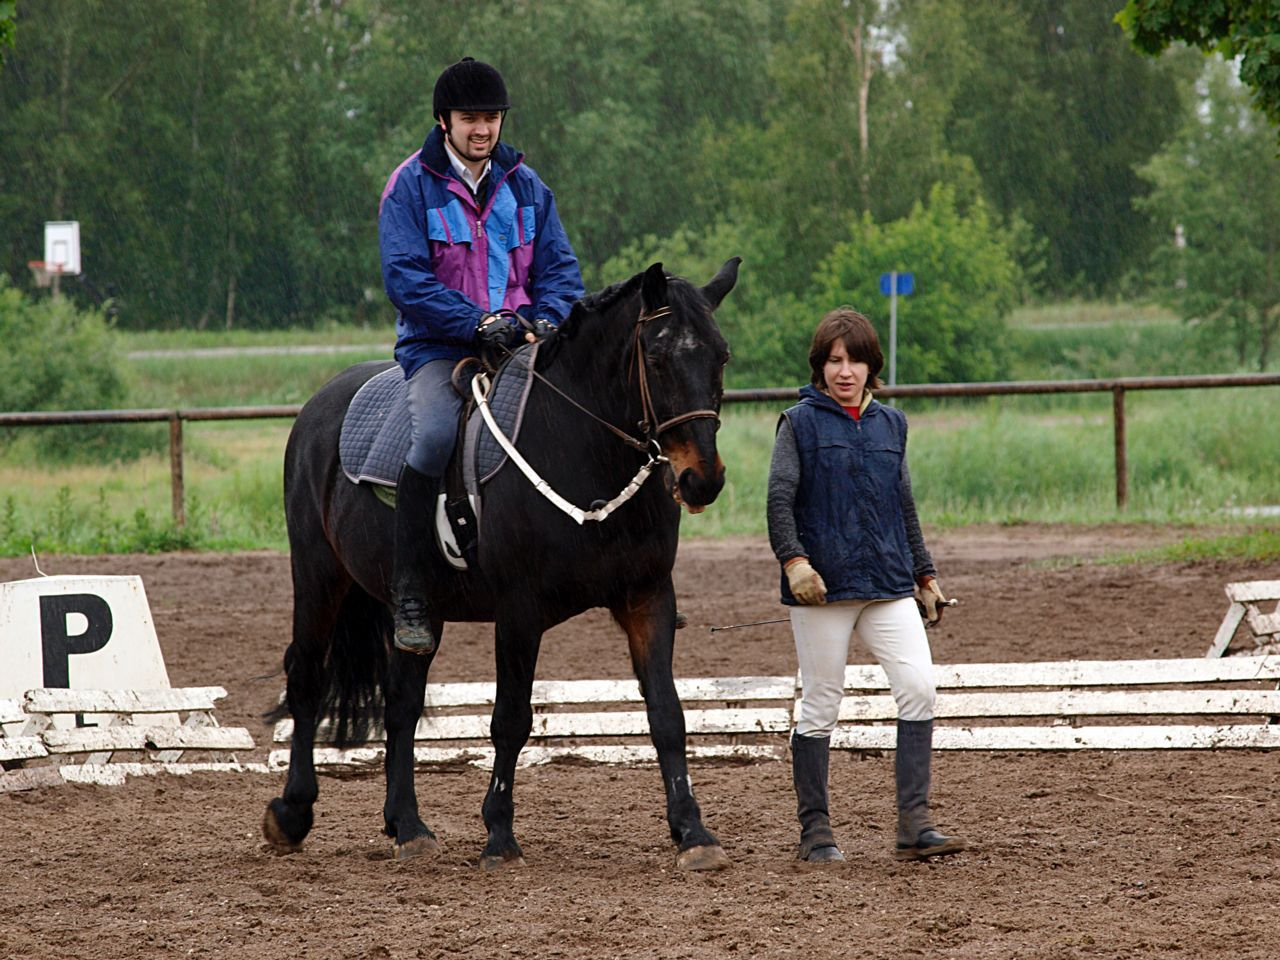 Michigan equestrian and horse back riding injury lawyers